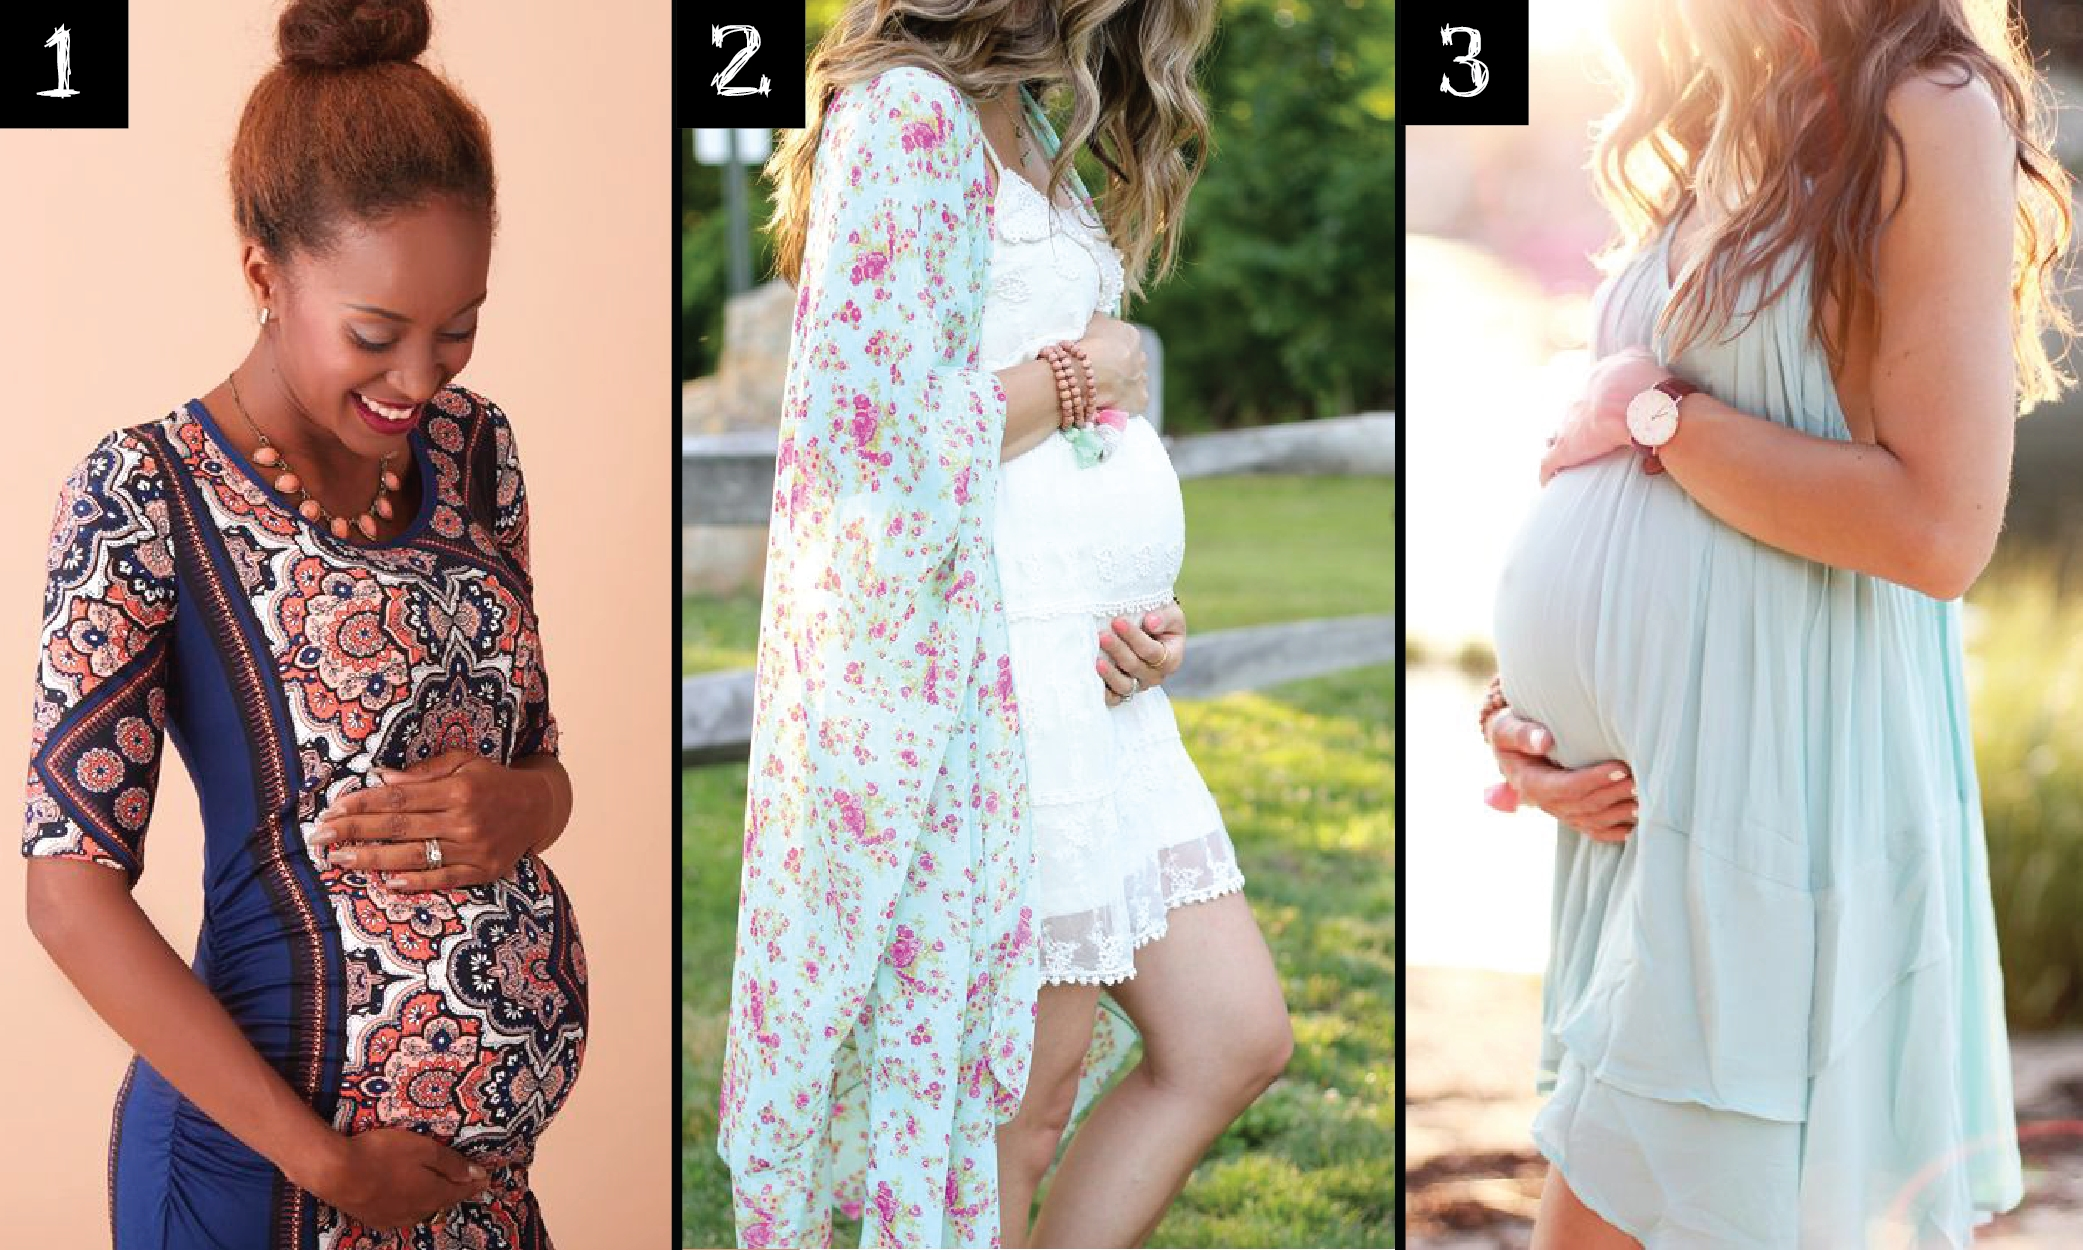 maternity photo outfit ideas. | noel photography and design